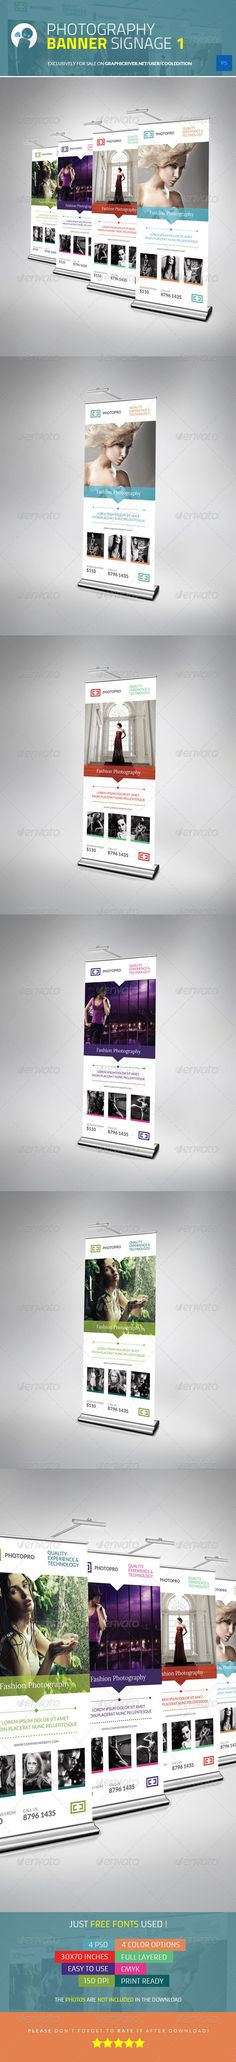 Photography Banner Signage 1 - $6: